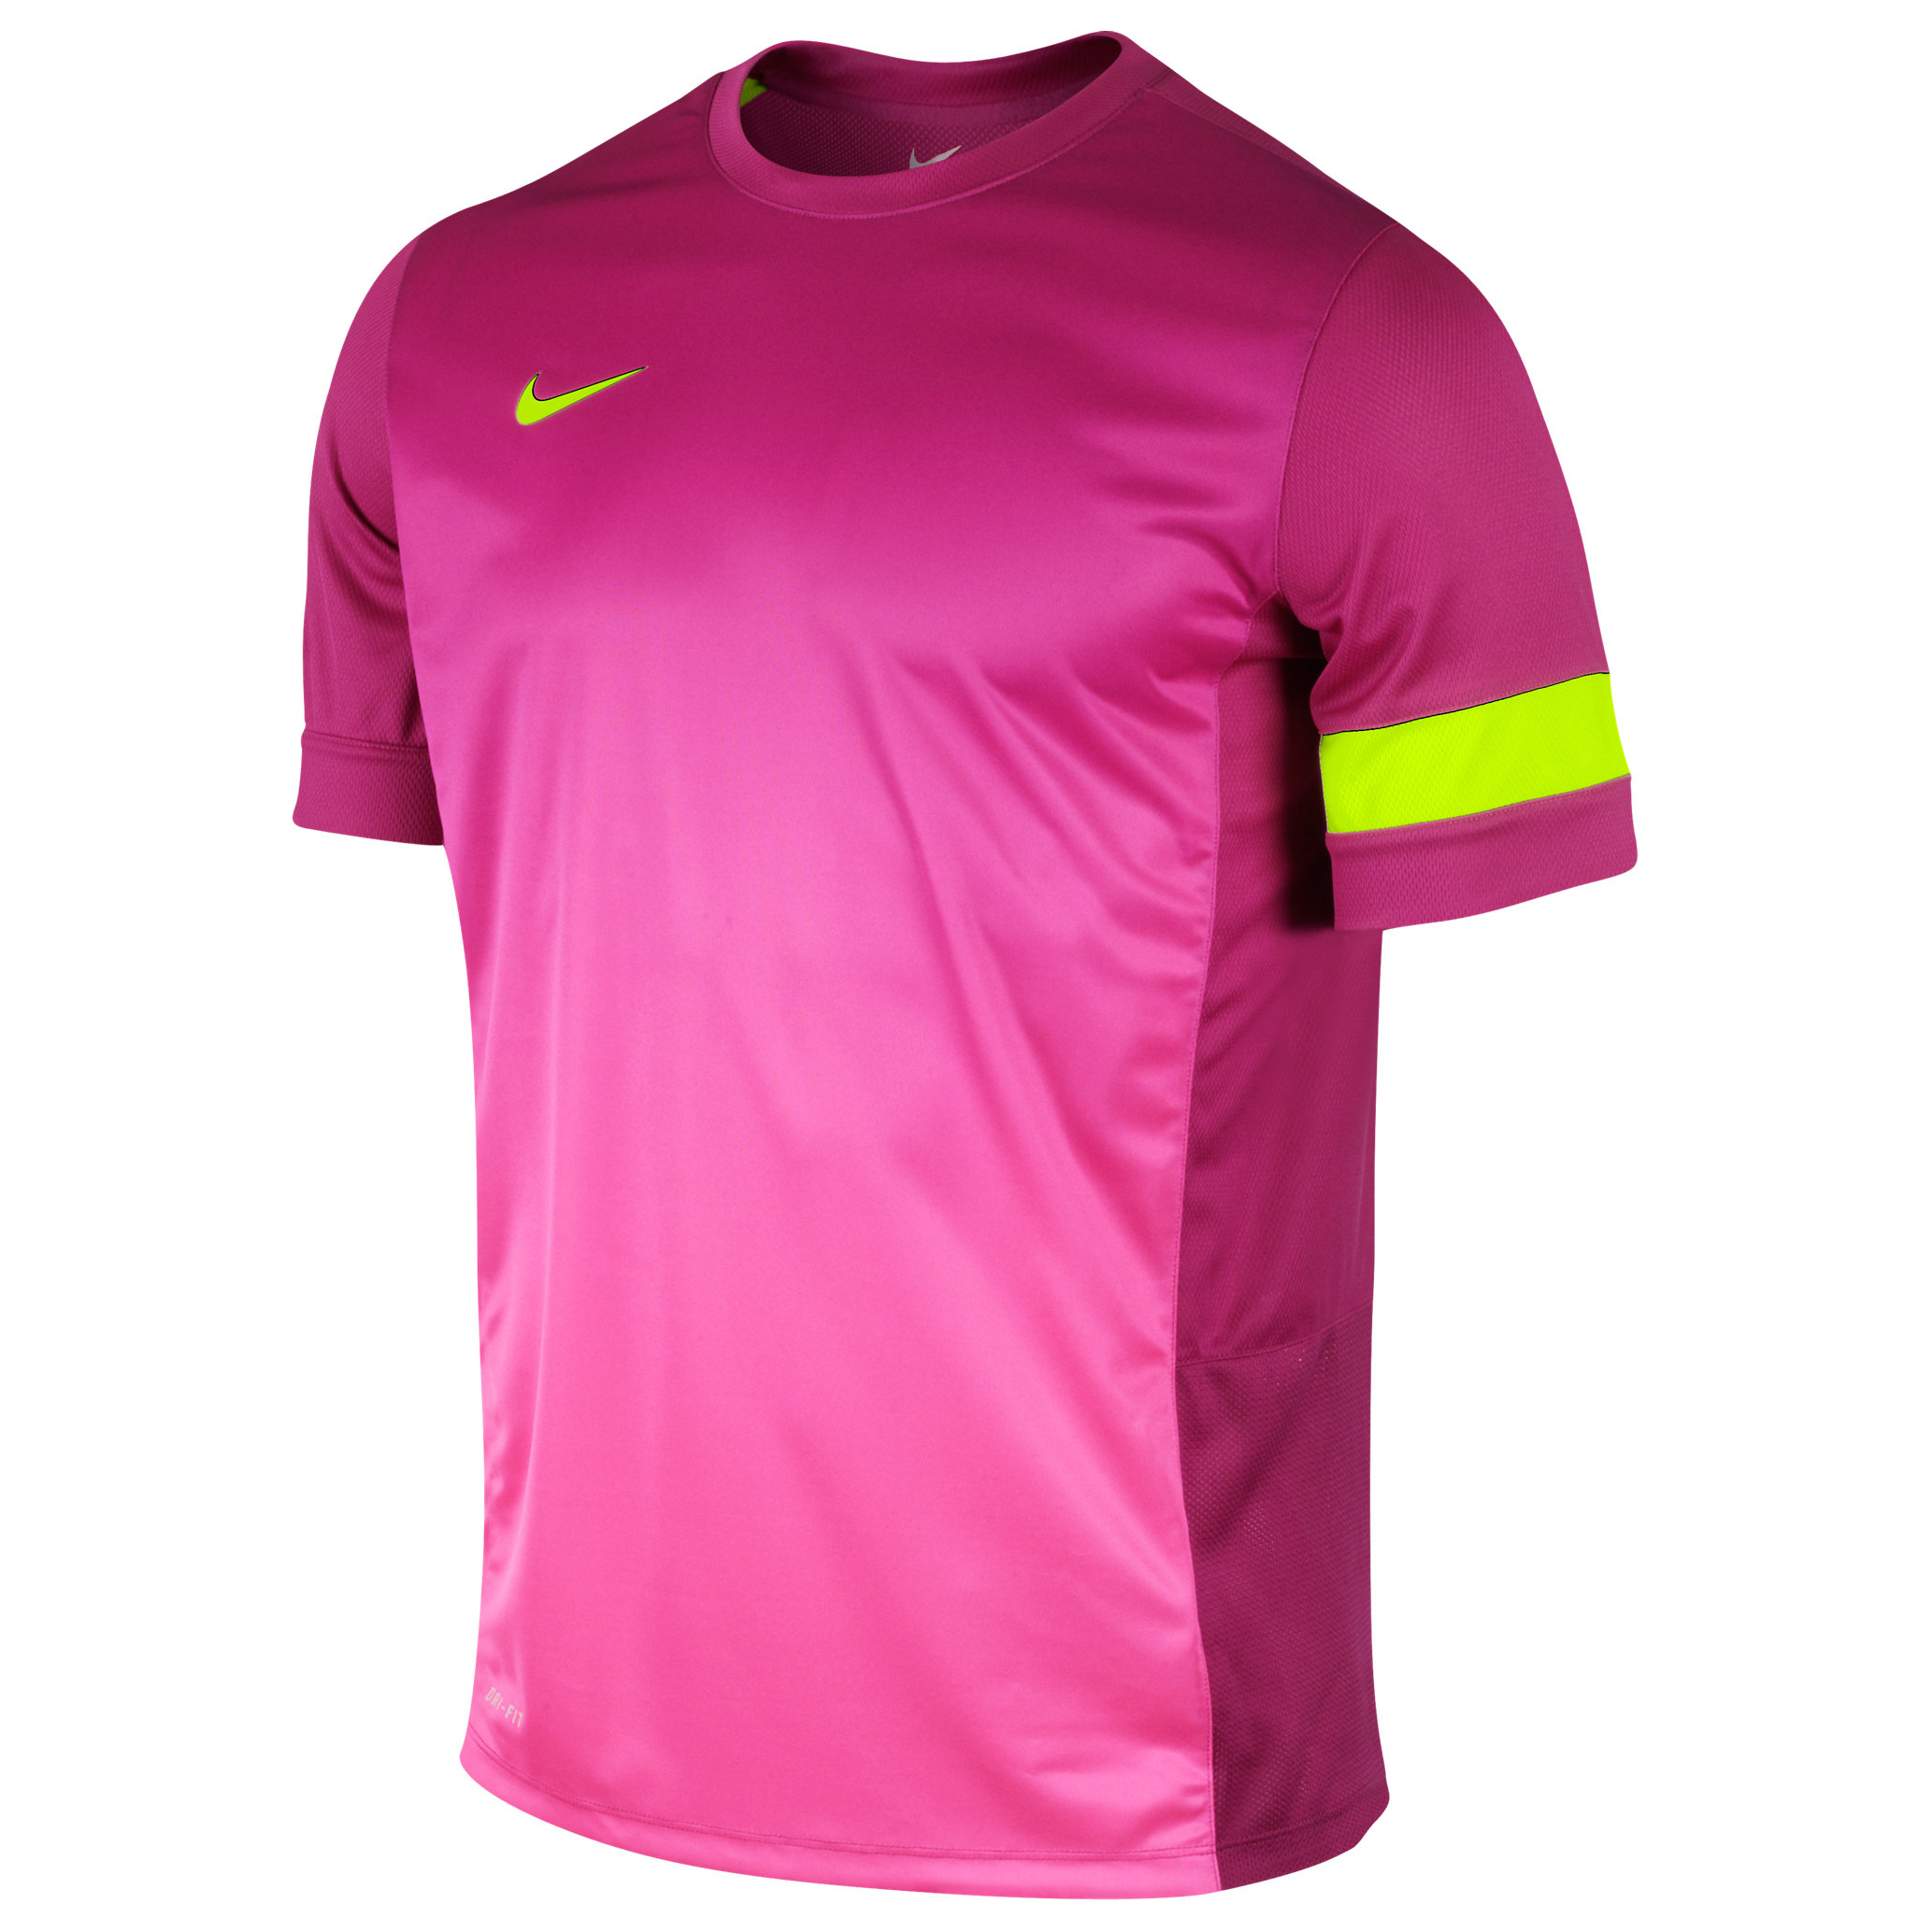 Nike Mercurial Training Top - Sport Fuchsia/Volt/Volt